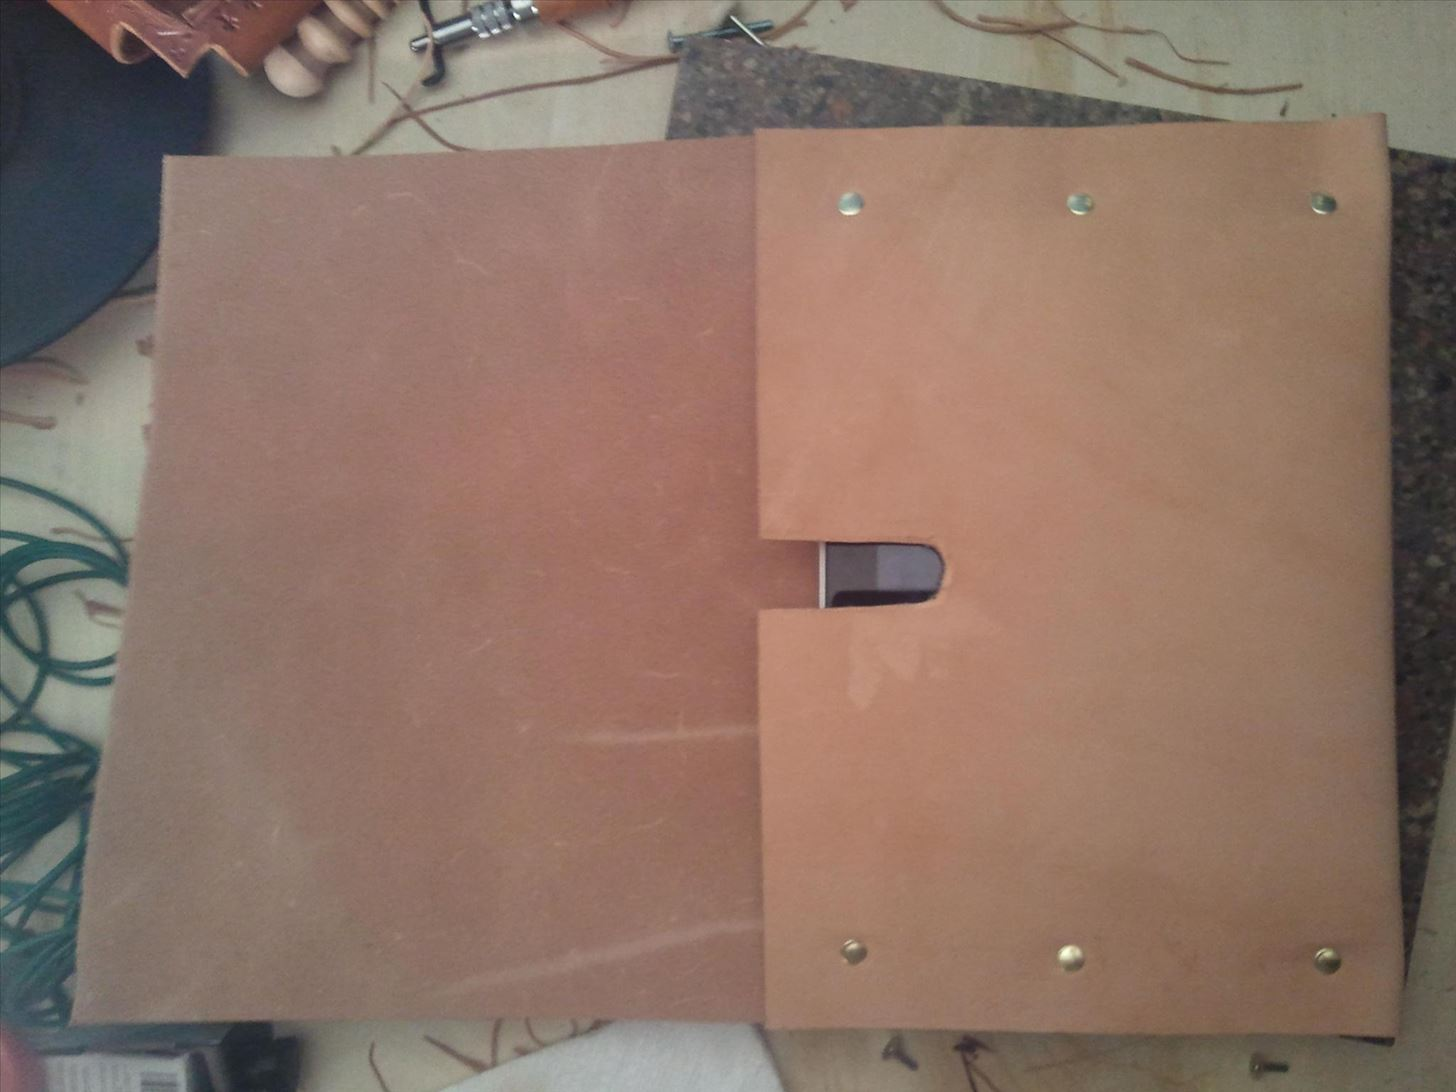 How to Make a Super-Simple Steampunk iPad Case Out of Leather